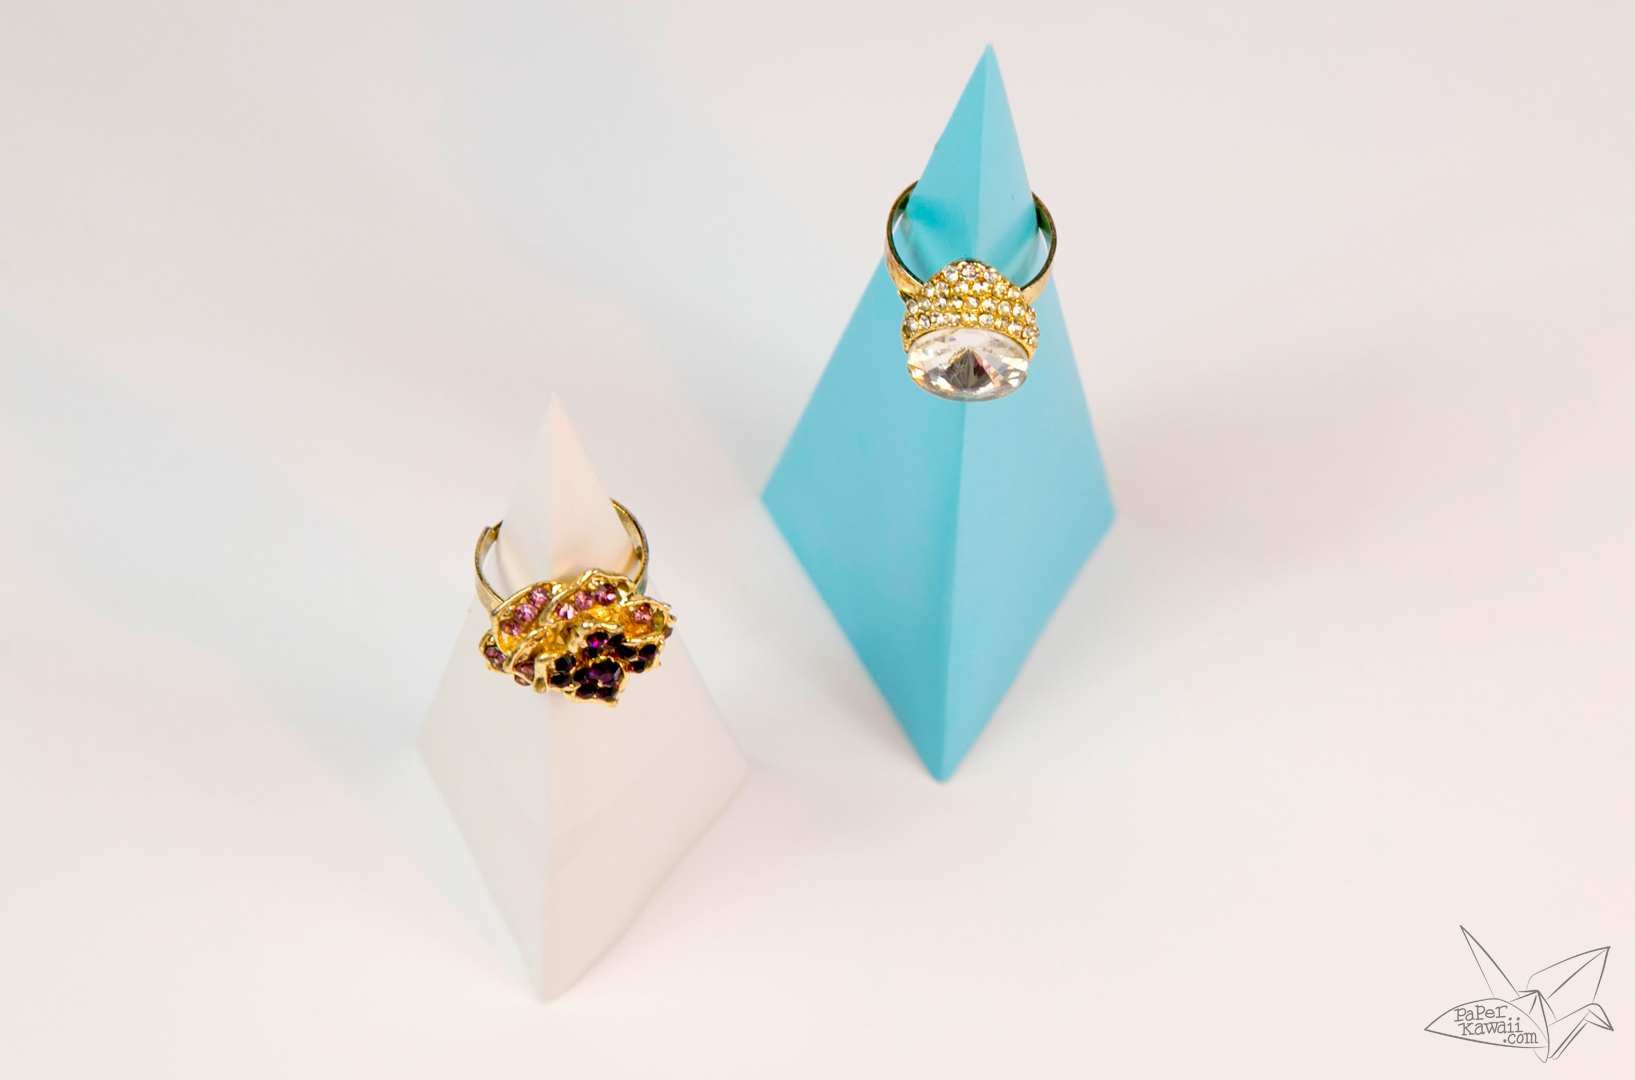 Origami Pyramid Ring Stand Tutorial via @paper_kawaii